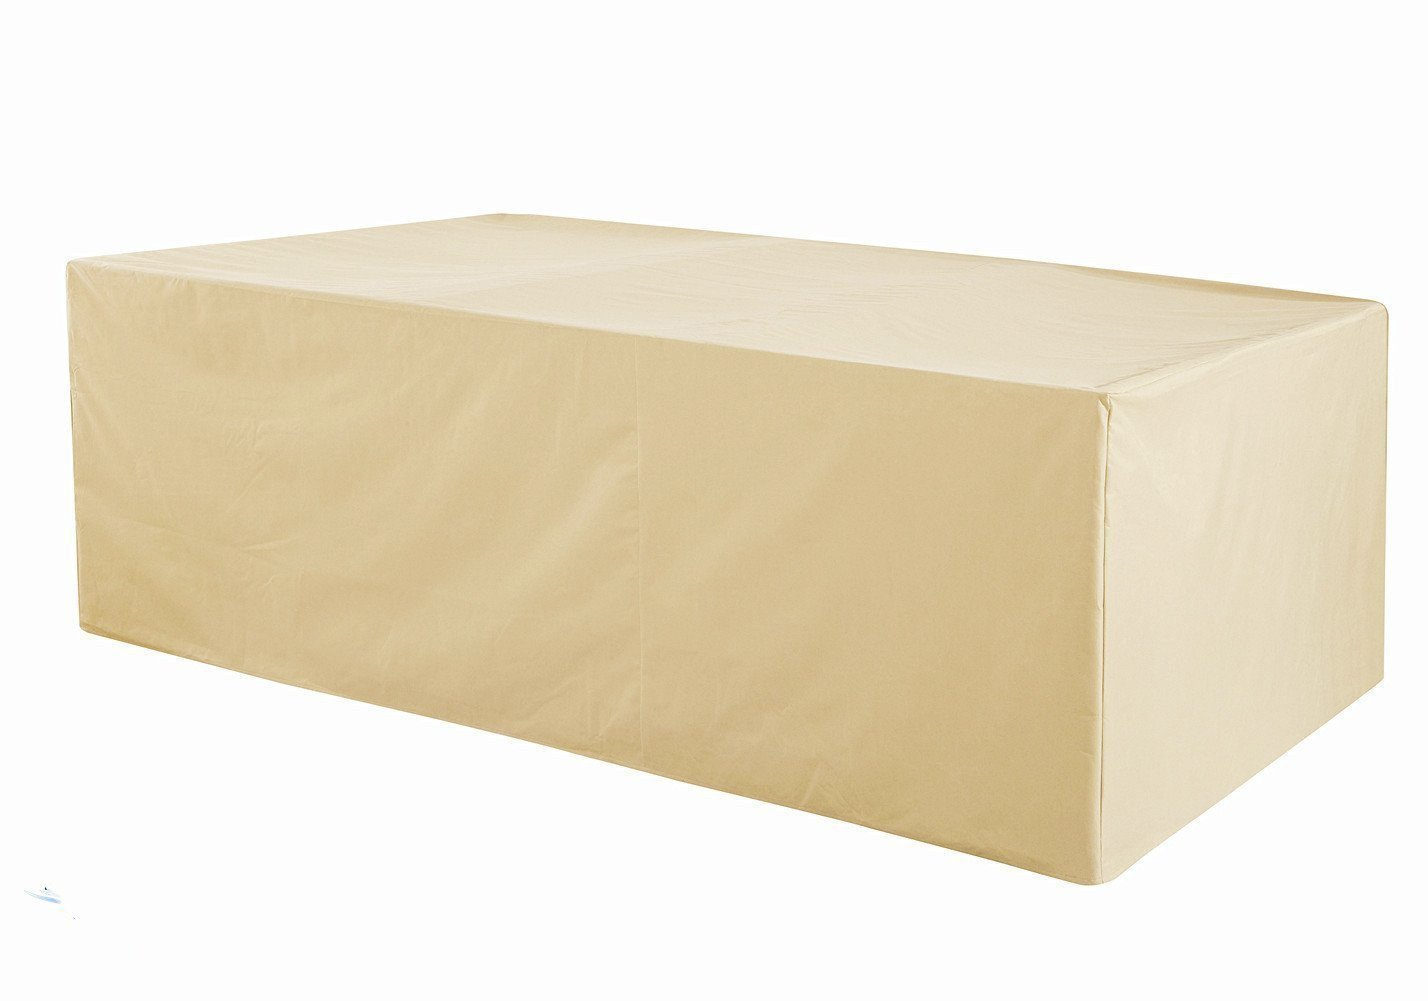 Grand Patio Rectangular Patio Table Cover, Weather-Resistant Patio Table and Chair Covers, Waterproof and Durable Patio Dining Set Cover, Large Size, Beige